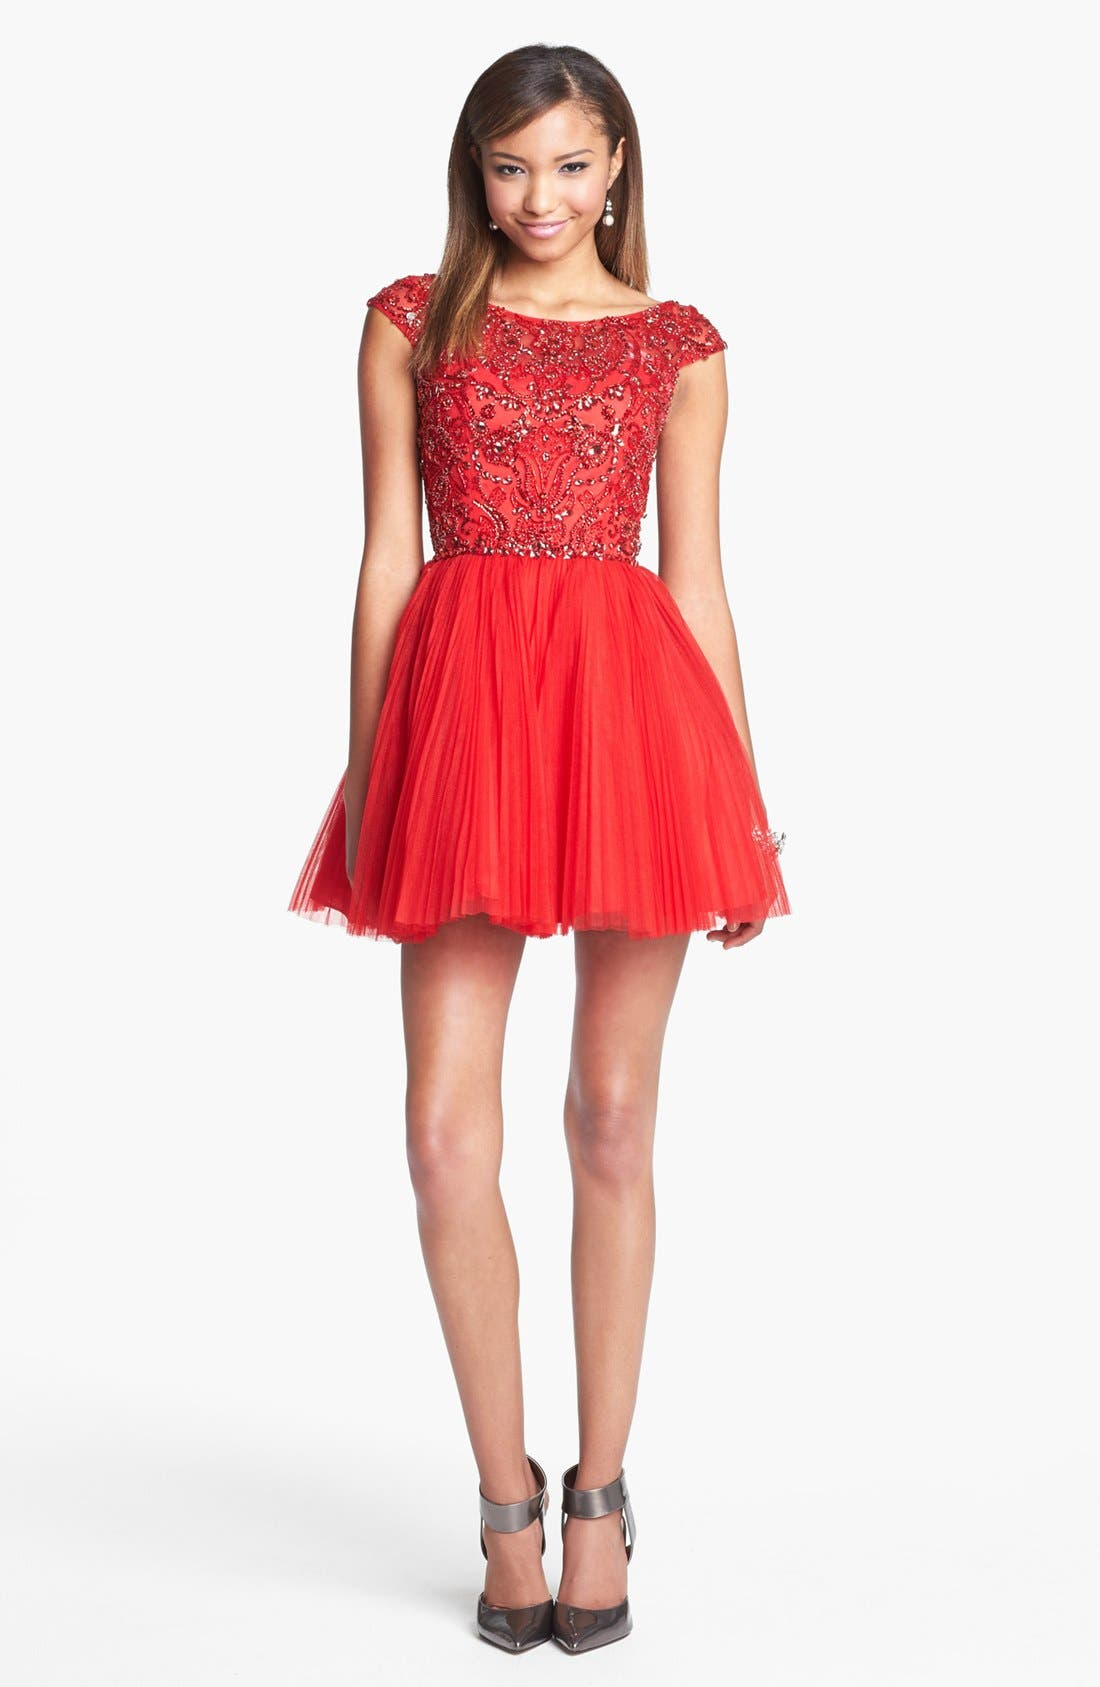 Main Image - Sherri Hill Embellished Tulle Fit & Flare Dress (Online Exclusive)